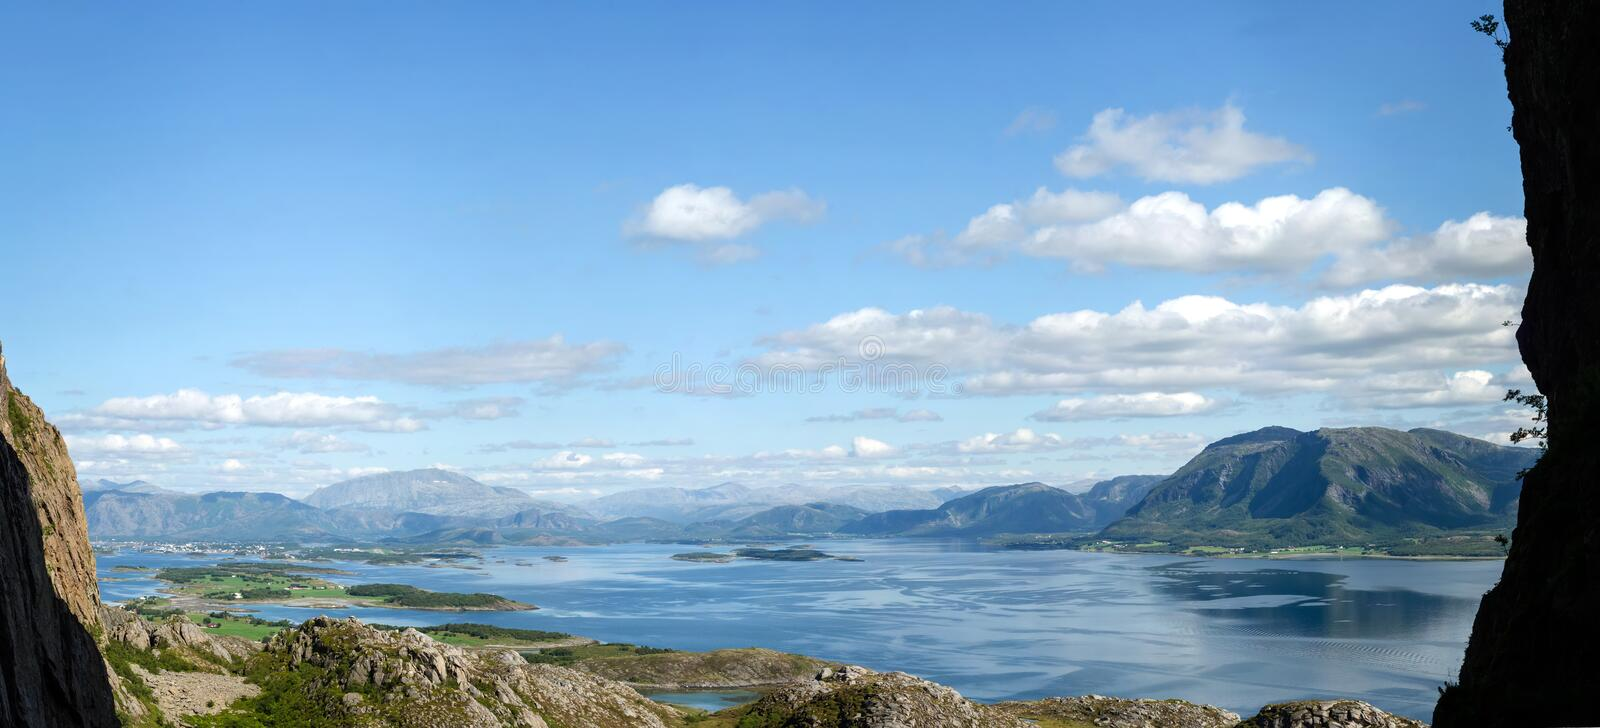 Download Fjord scenery panorama stock image. Image of clouds, clearance - 27068435